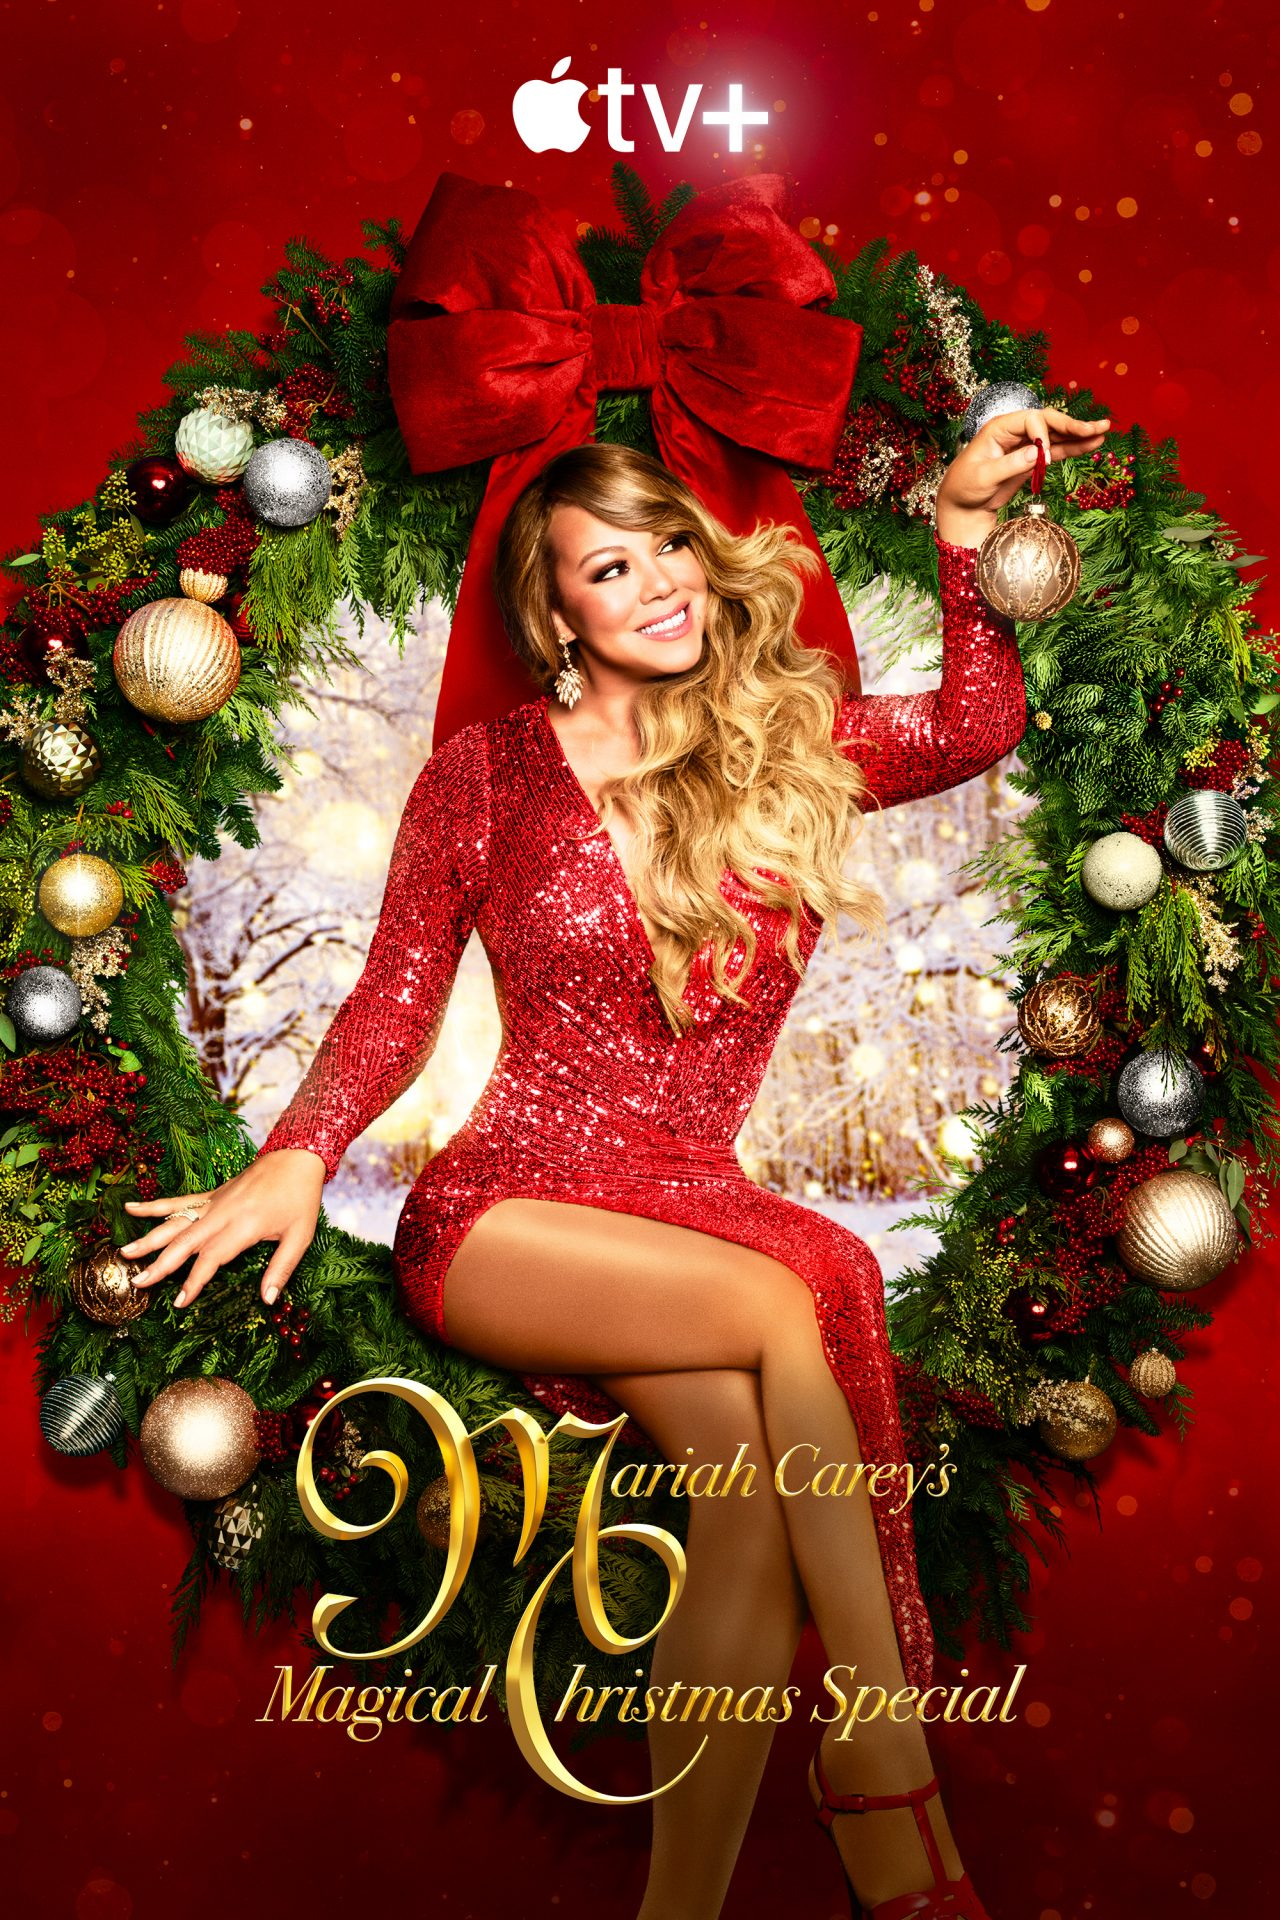 Mariah Carey's Christmas Special Coming to Apple TV+